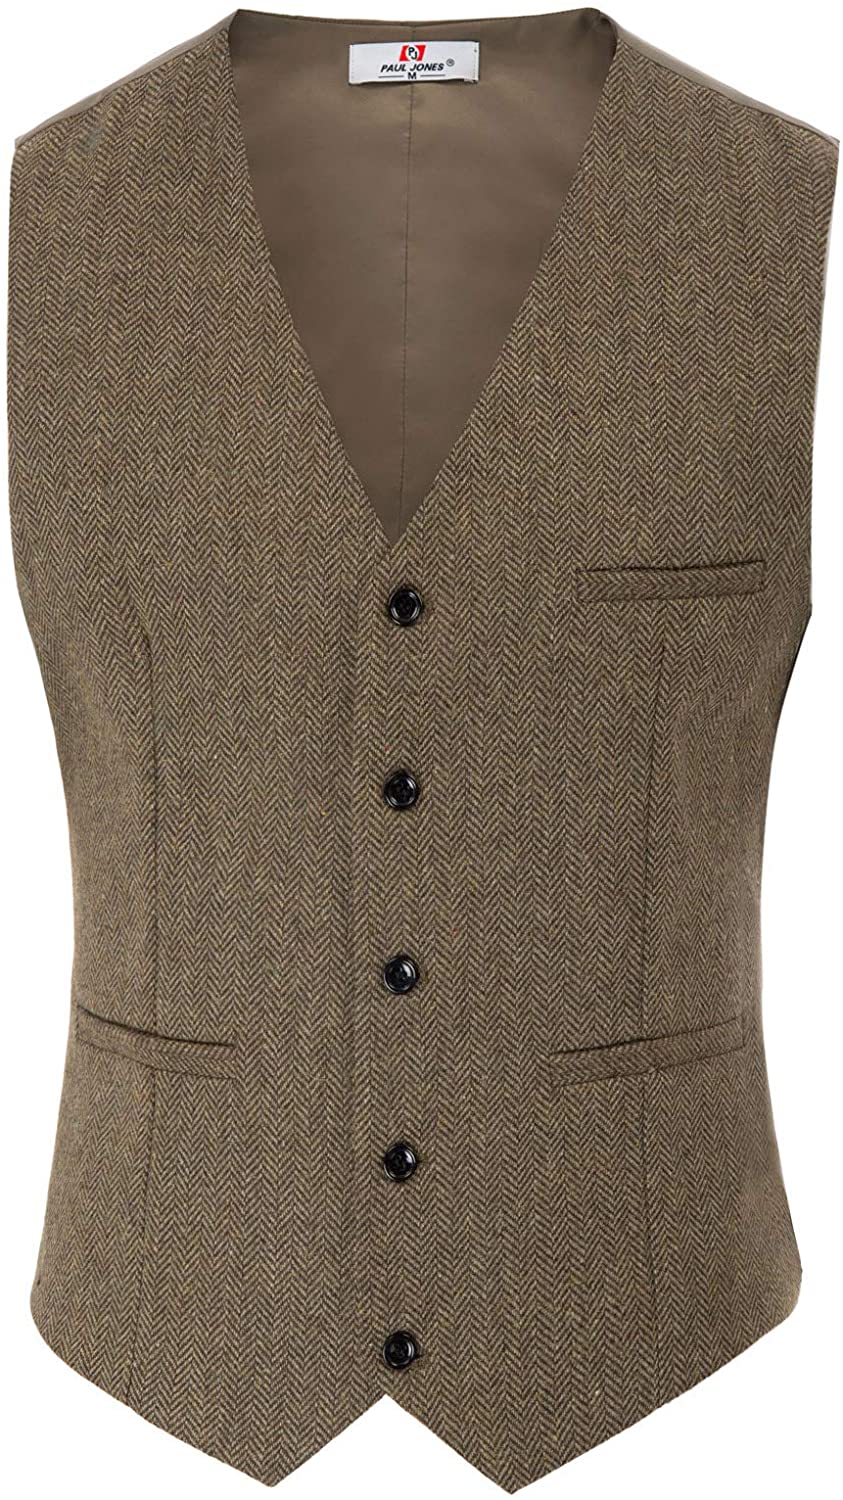 1920s Style Mens Vests PAUL JONES Mens British Herringbone Tweed Vest Premium Wool Waistcoat $32.99 AT vintagedancer.com